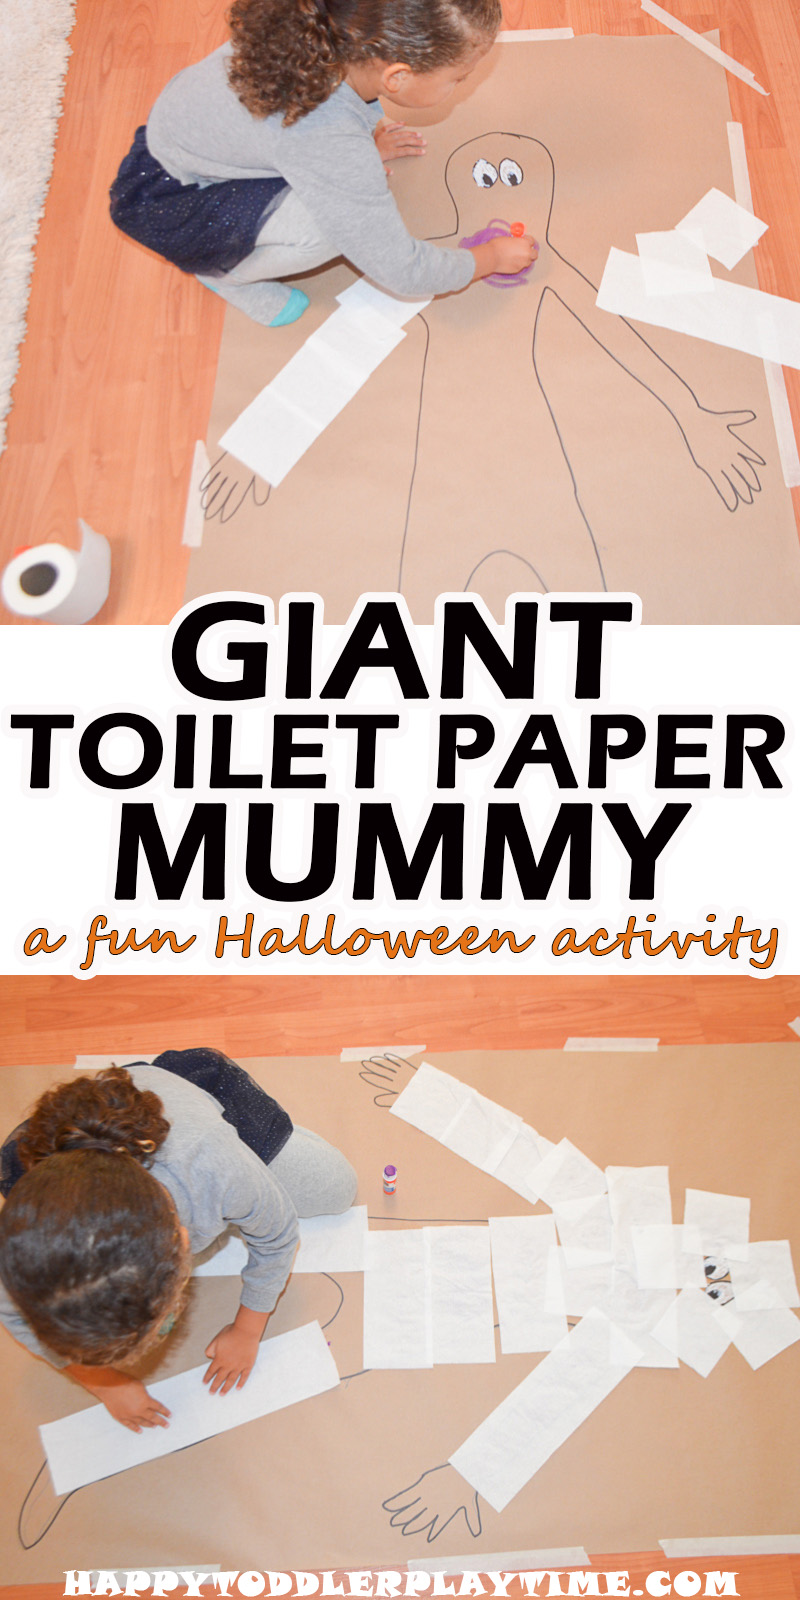 31 GIANT Indoor Activities for toddlers & preschoolers